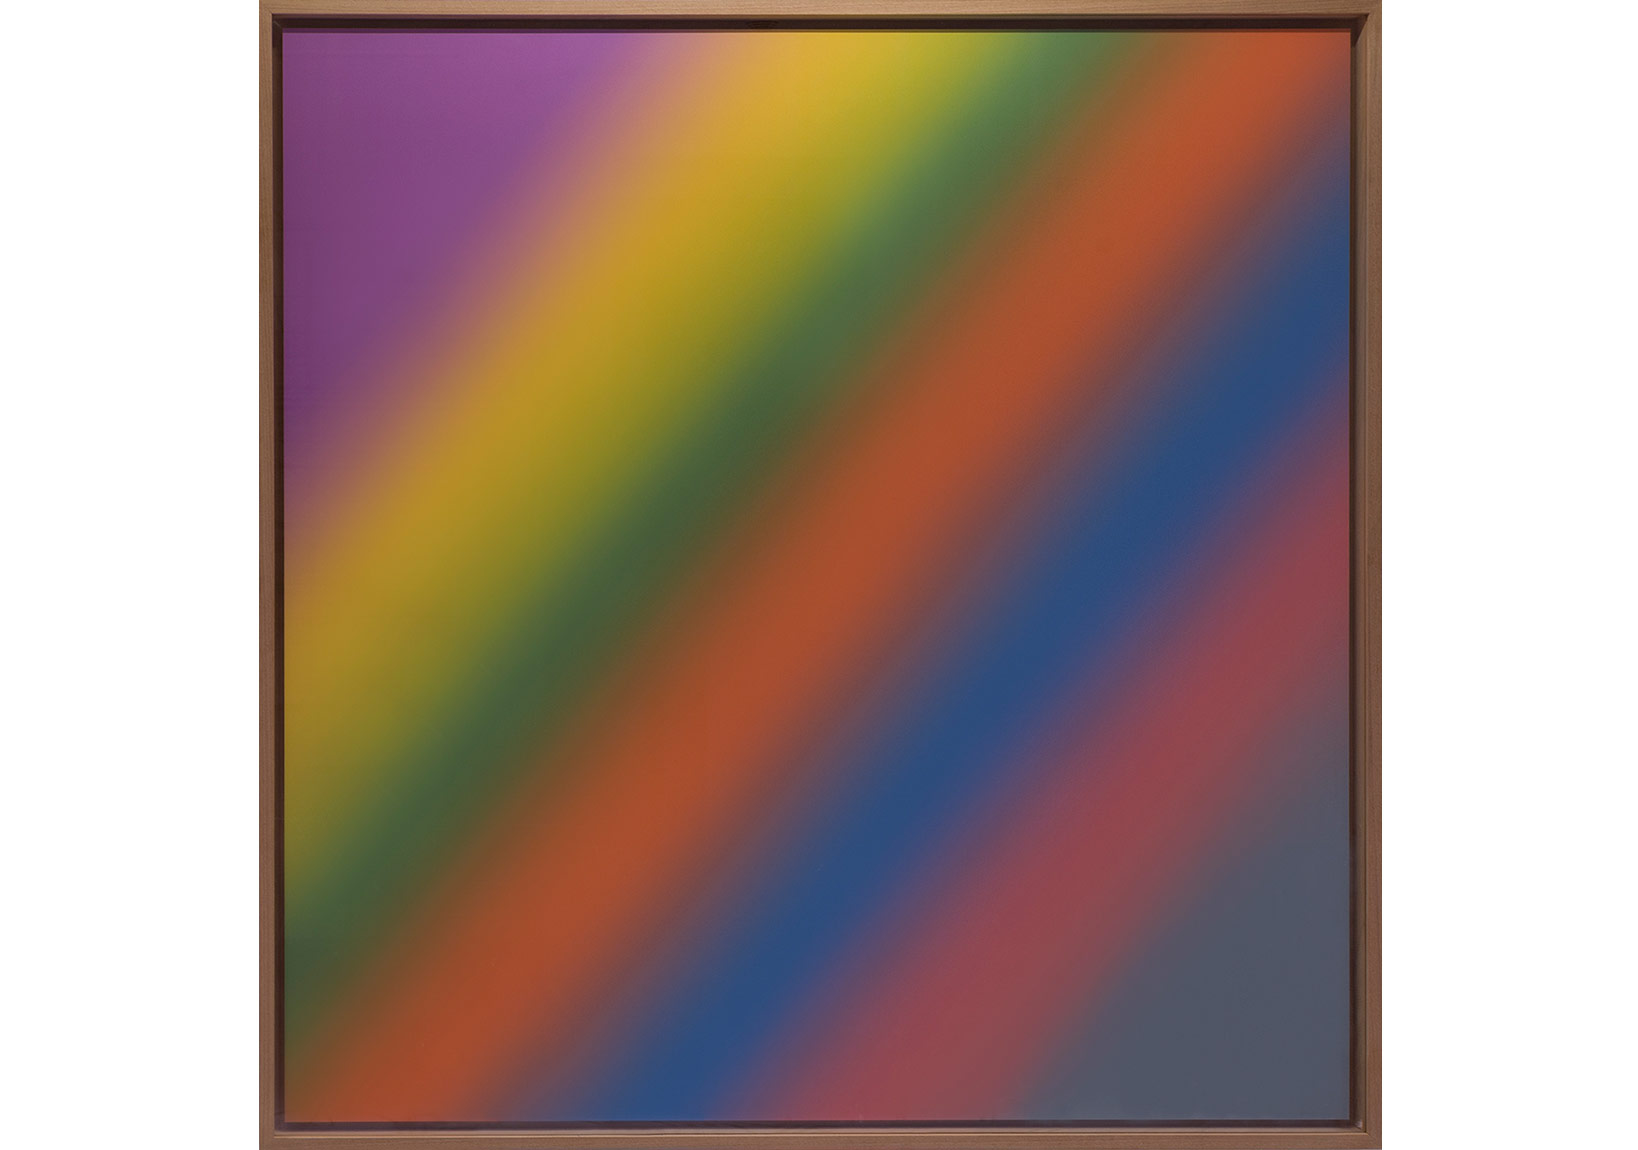 Scheinbogen, 2014 Ink-jet print on Hahnemühle photo rag ultra smooth 305 gr 150 × 150 cm, alu-dibond,Wooden frame; 158 × 158 cm5+2